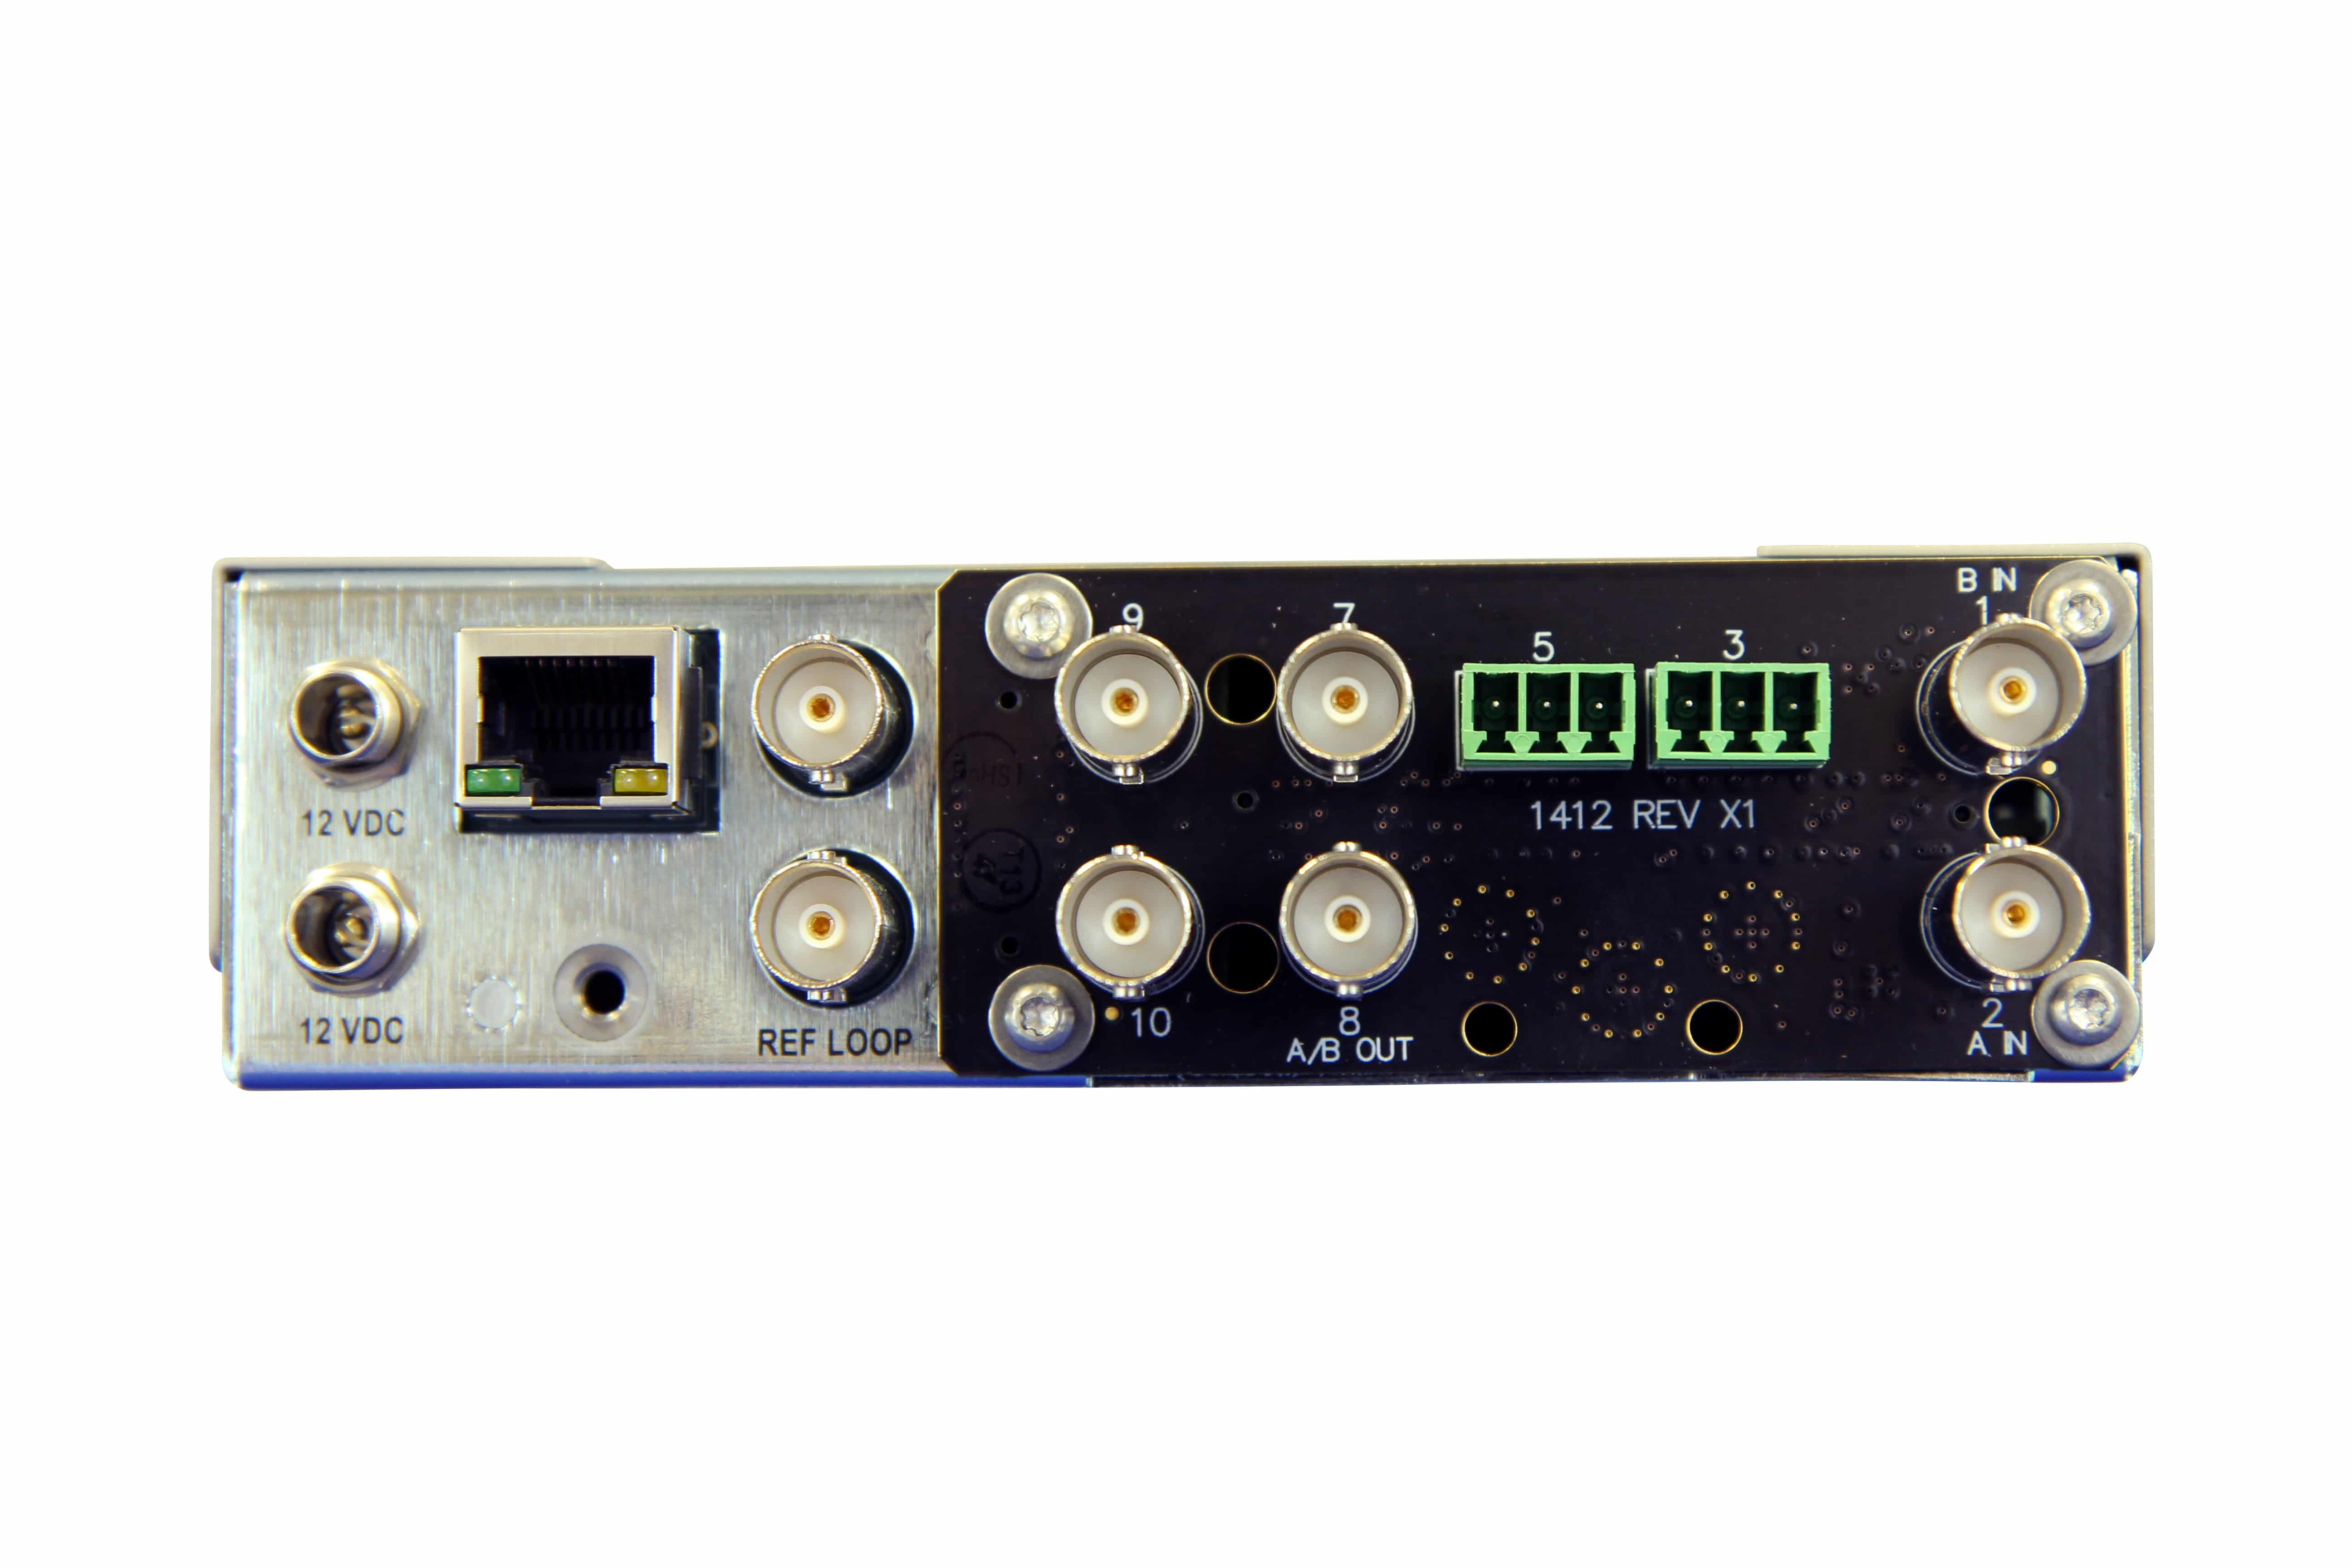 PKA-2210 Automatic Changeover Protection Switch with FrameSync - Standalone